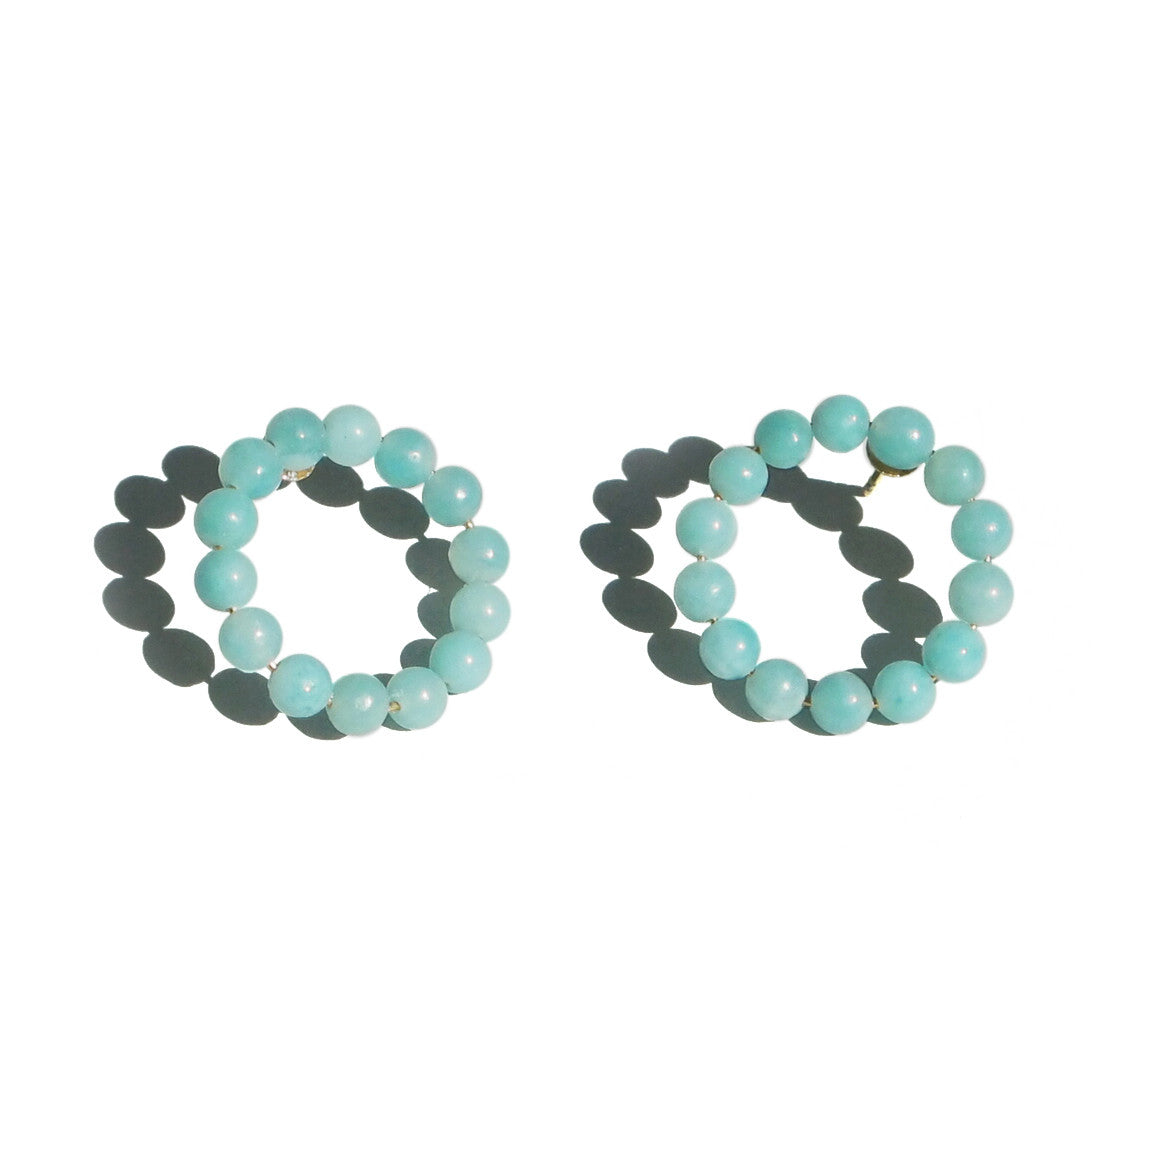 Saskia Diez - Ocean Turquoise Earrings